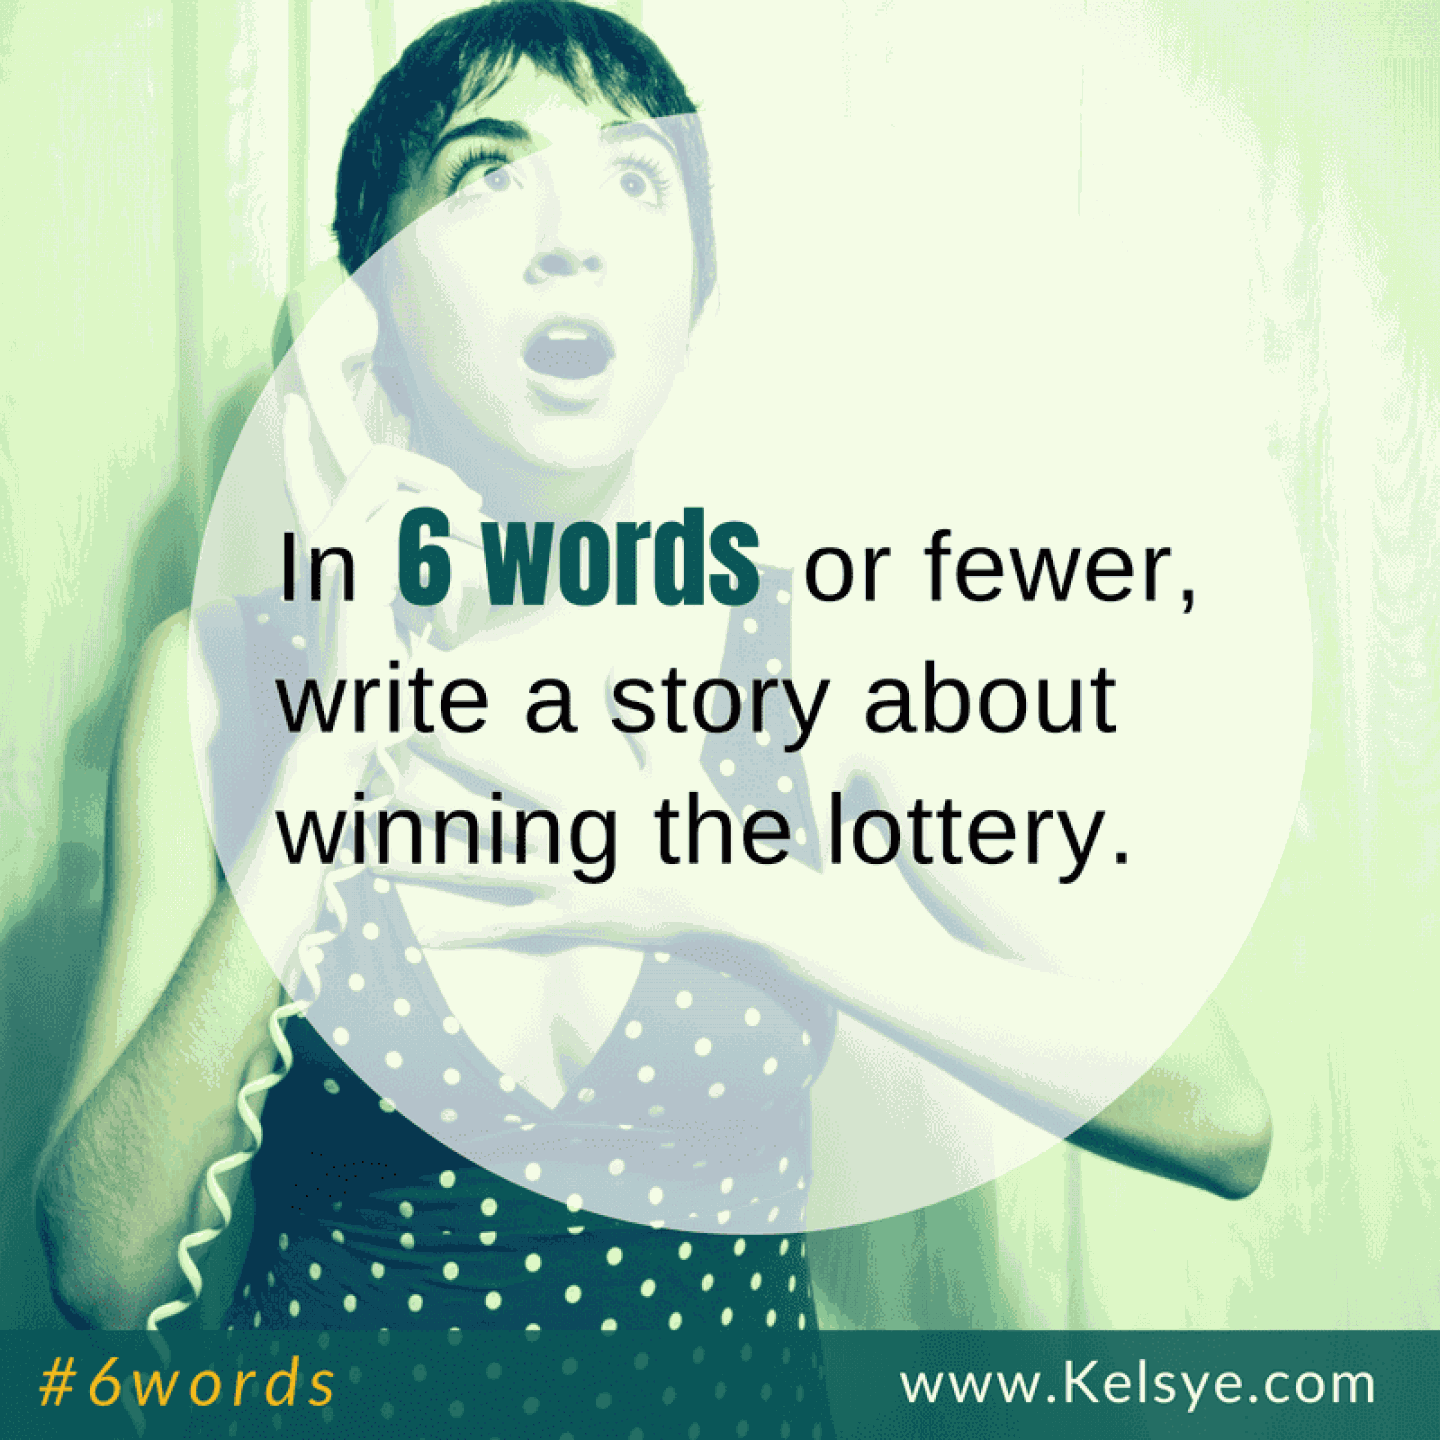 USED 6words sq winning the lottery